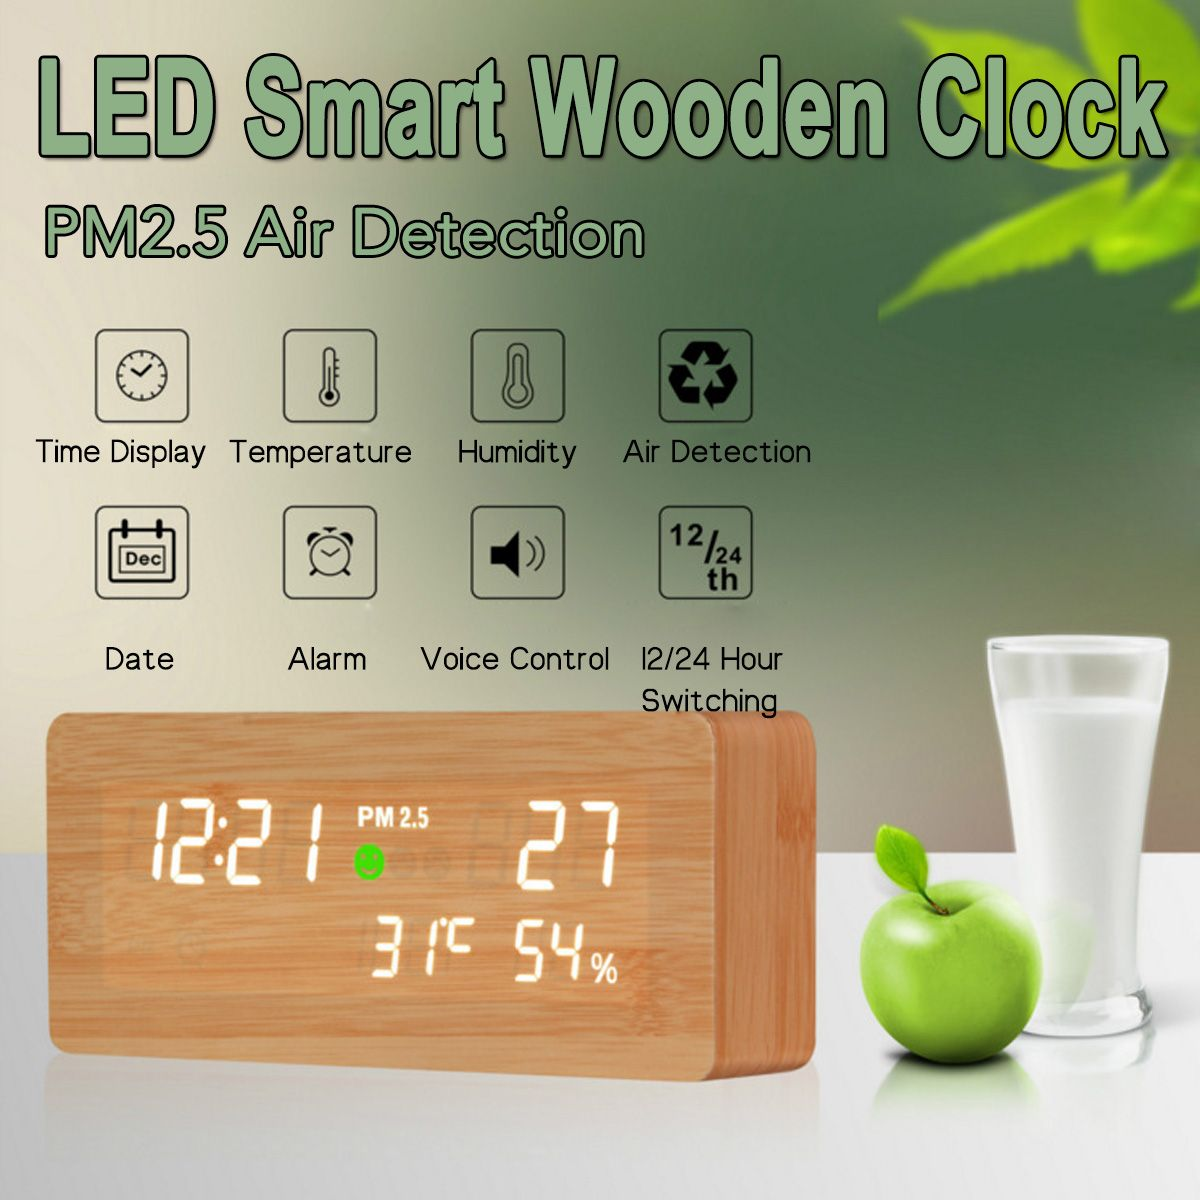 Wooden LED Digital Alarm Clock Air Quality Monitor PM2.5 Detector Tester Gas Analyzer Temperature Humidity Meter Diagnostic